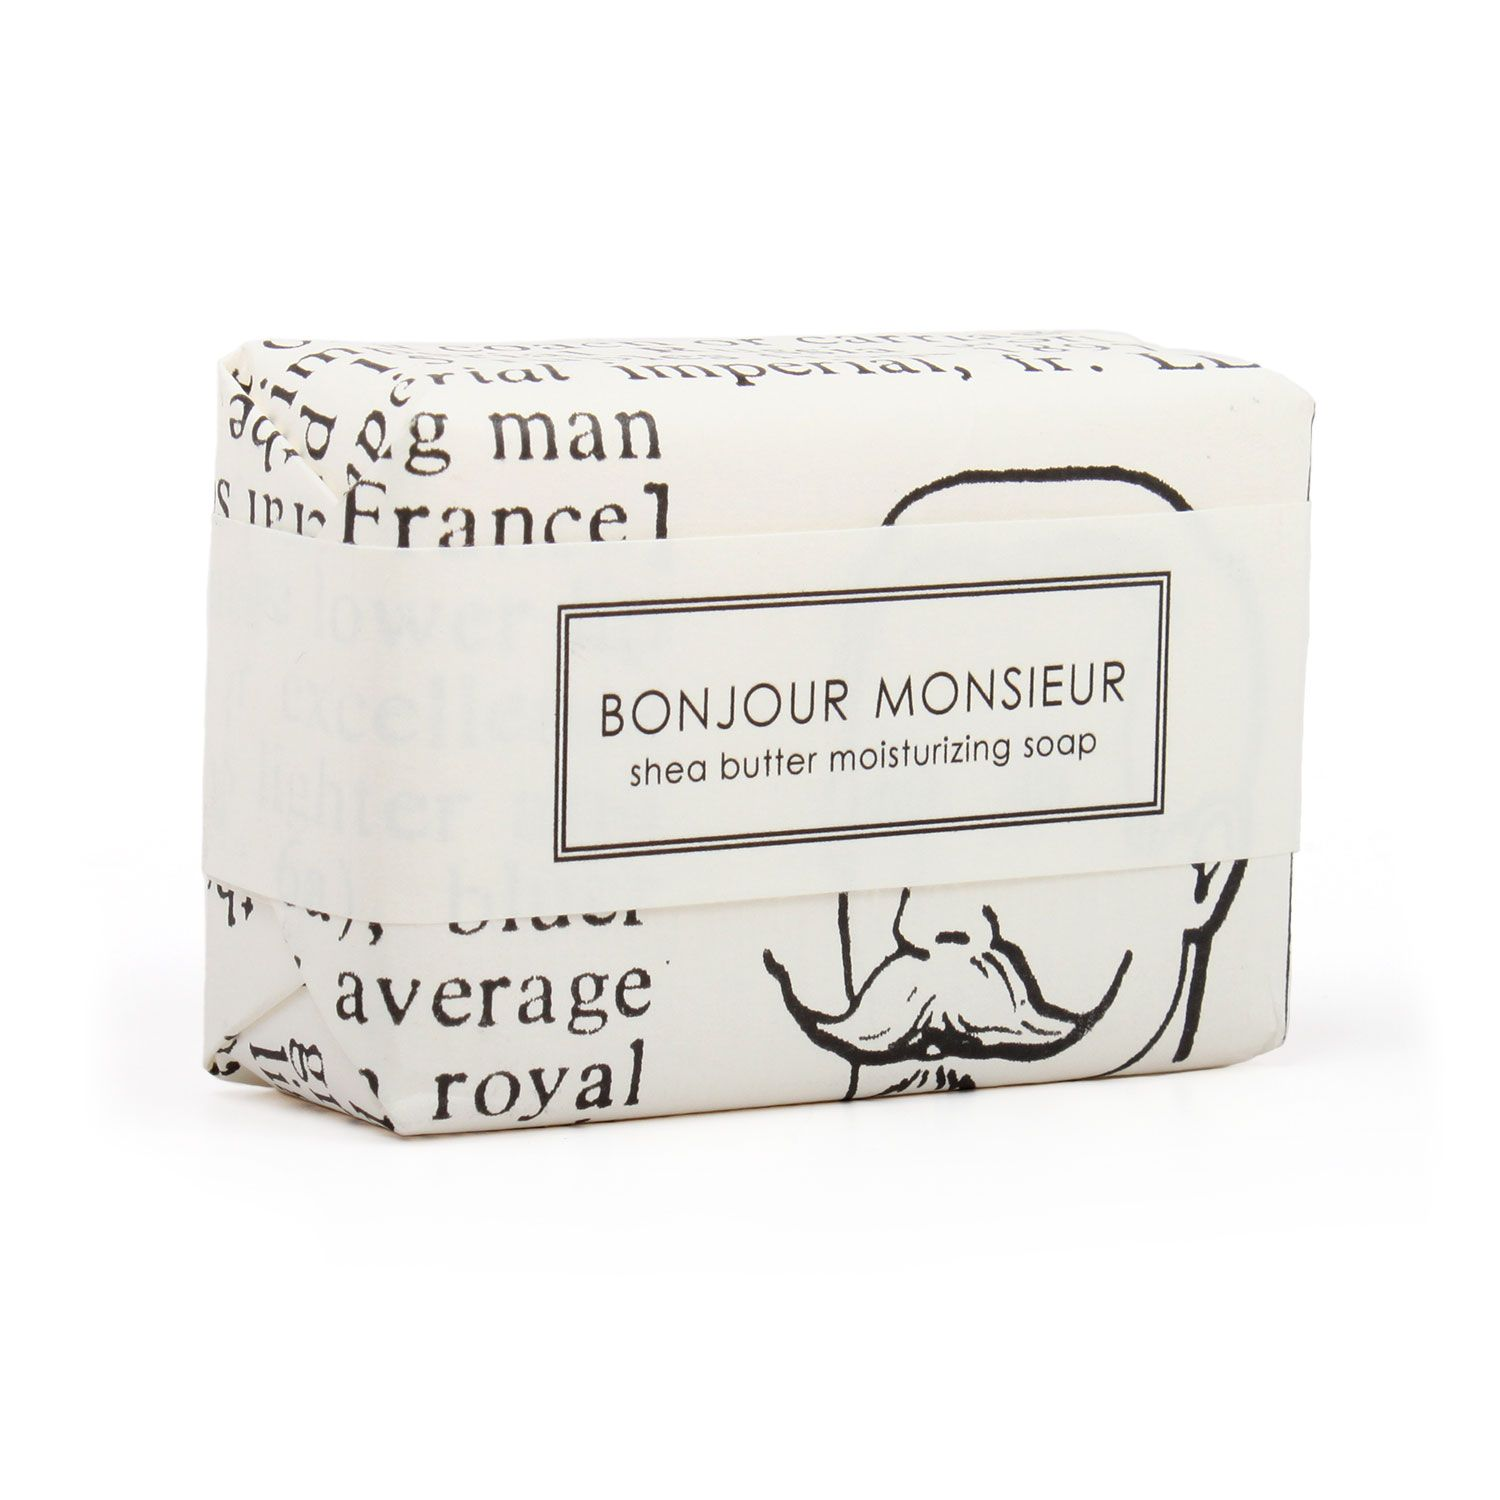 BATH BAR, BONJOUR MONSIEUR Formulary 55 Long lasting and luxurious extra-moisturizing shea butter bars make for a delightful gift. We love to give them in a fat stack, tied with a ribbon. Bonjour Monsieur is combination of roasted tea leaves, tobacco, cedarwood & Sicilian lemon. Also, best soap name ever.